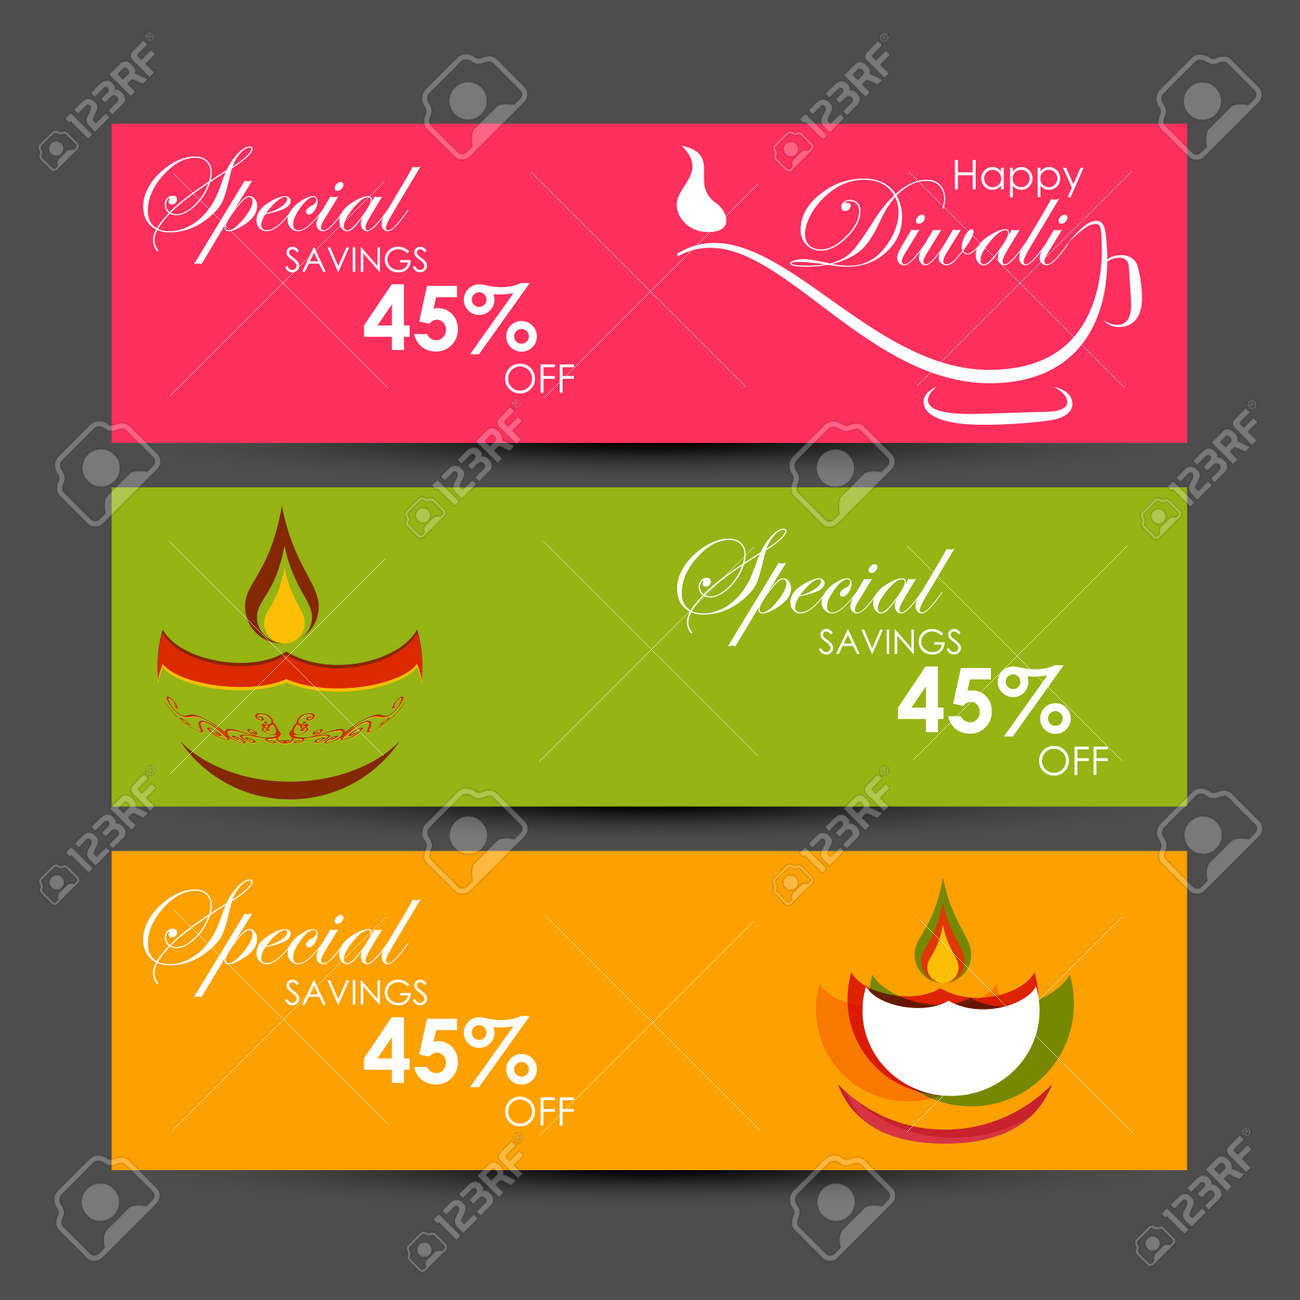 Vector illustration or greeting card of Diwali festival with stylish beautiful oil lamp and Diwali elements,Diwali SALE, Diwali Special offer background. - 168071223